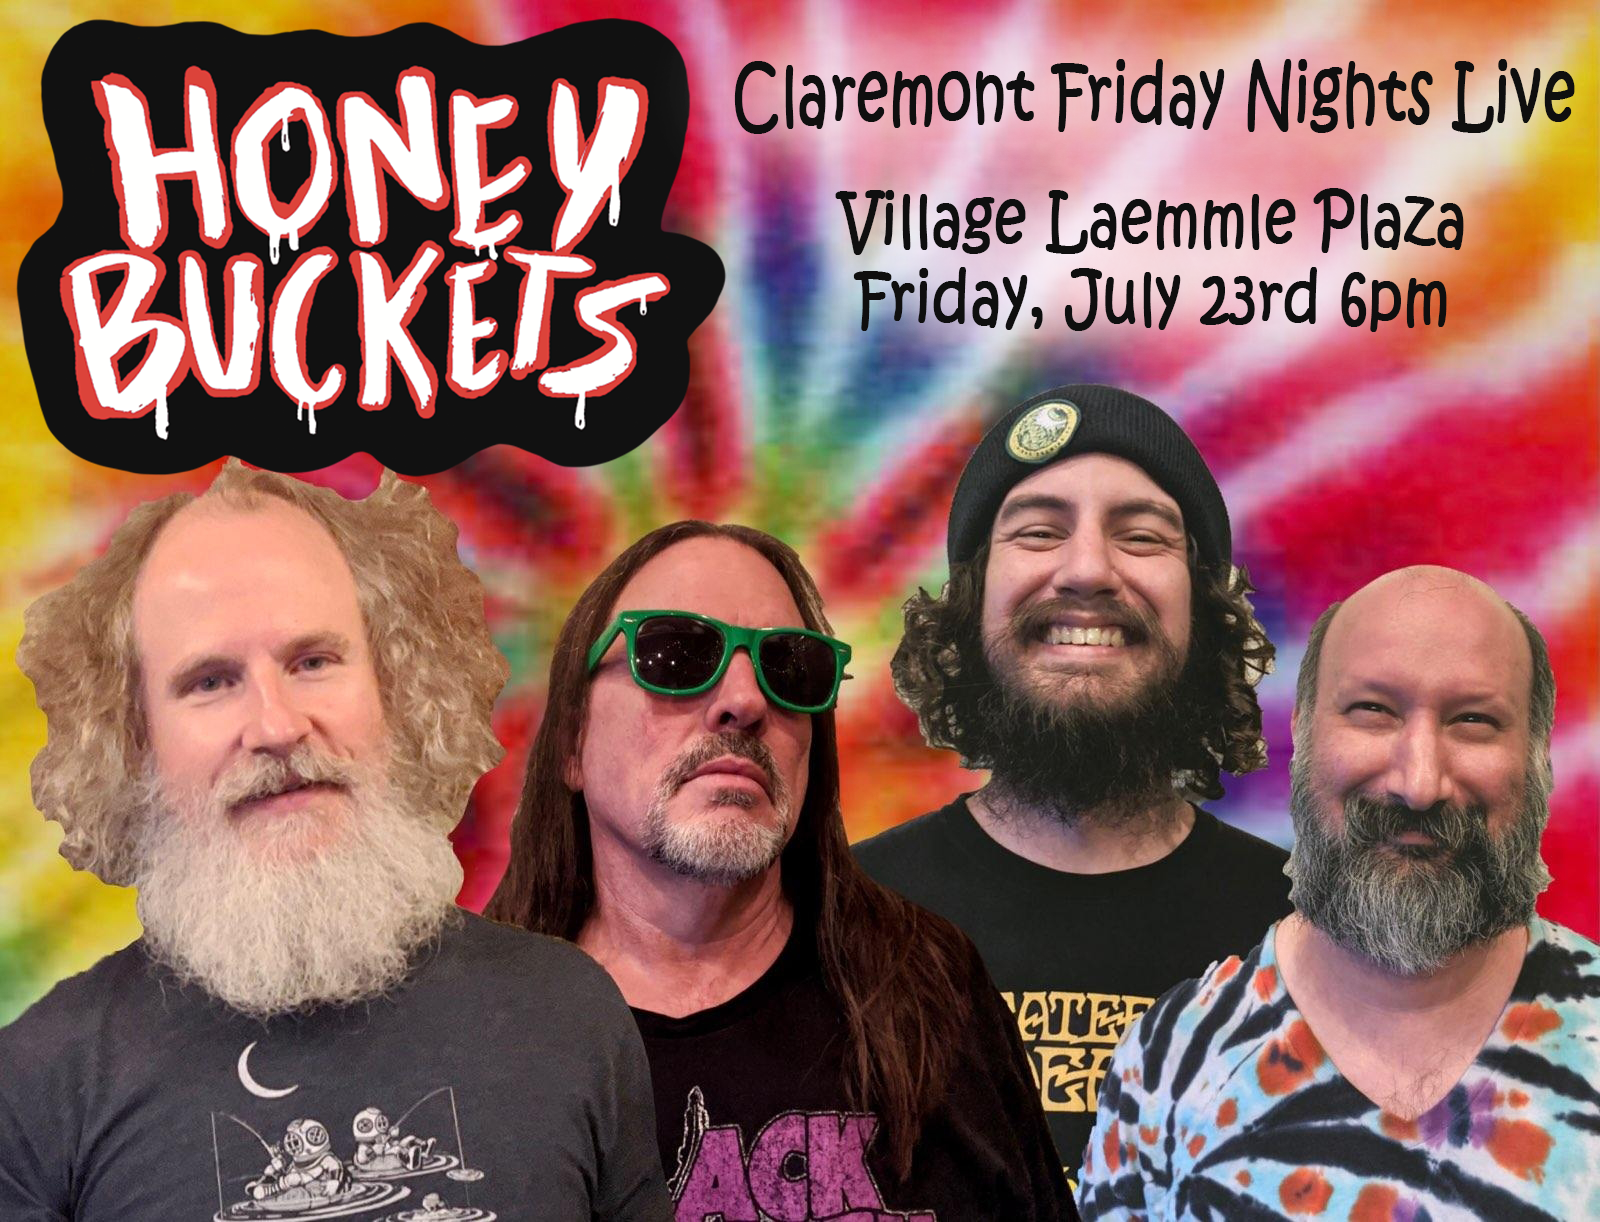 Honey Buckets Bluegrass Band - Claremont Friday Nights Live, July 23rd 2021